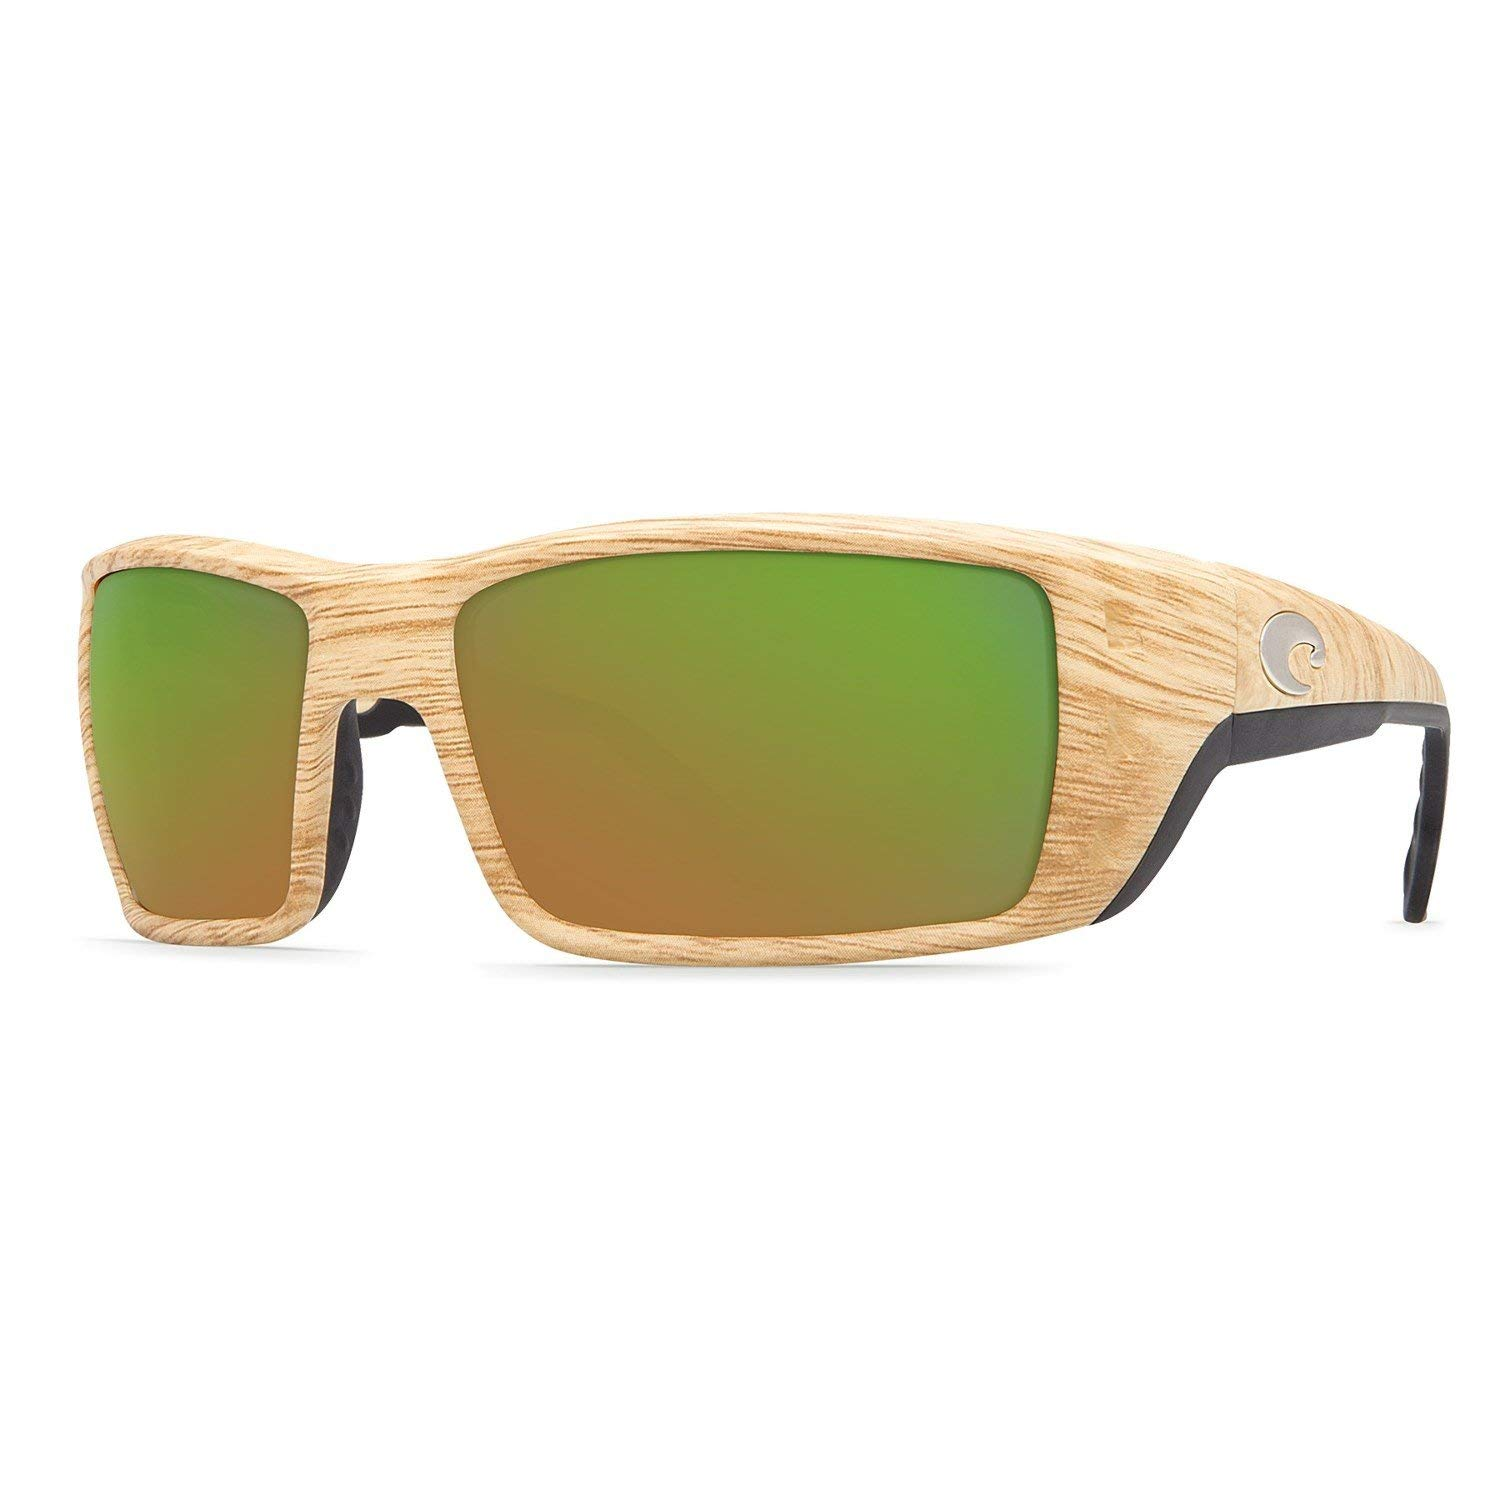 09e322dbd0 Costa Del Mar Sunglasses - Permit- Glass   Frame  Ashwood Lens  Polarized  Green